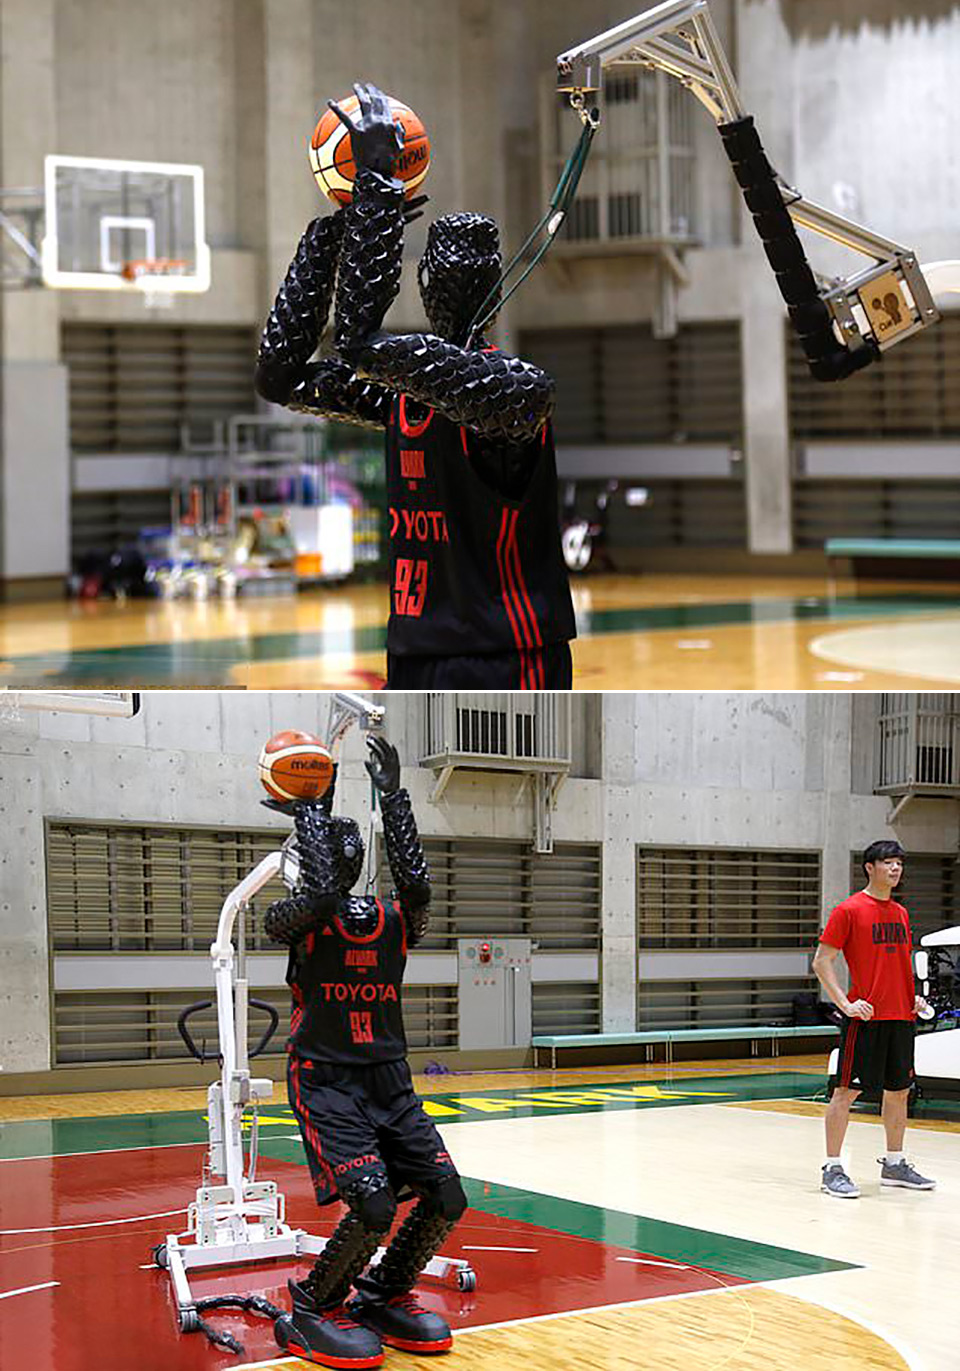 Toyota CUE 3 Basketball Robot